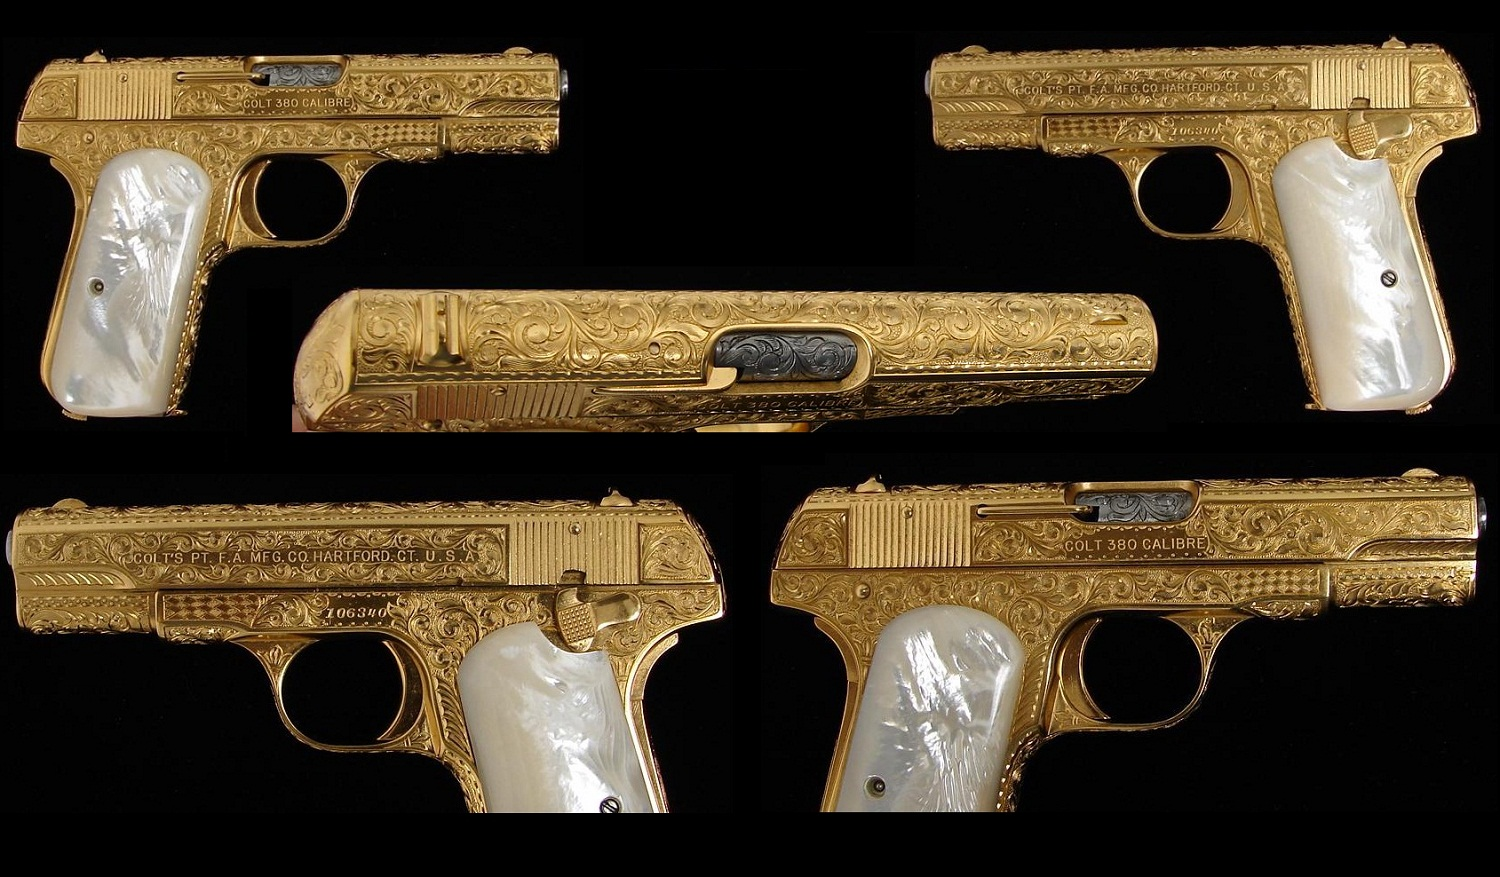 1908 Colt Hammerless Pocket Model Calibre 380 gold